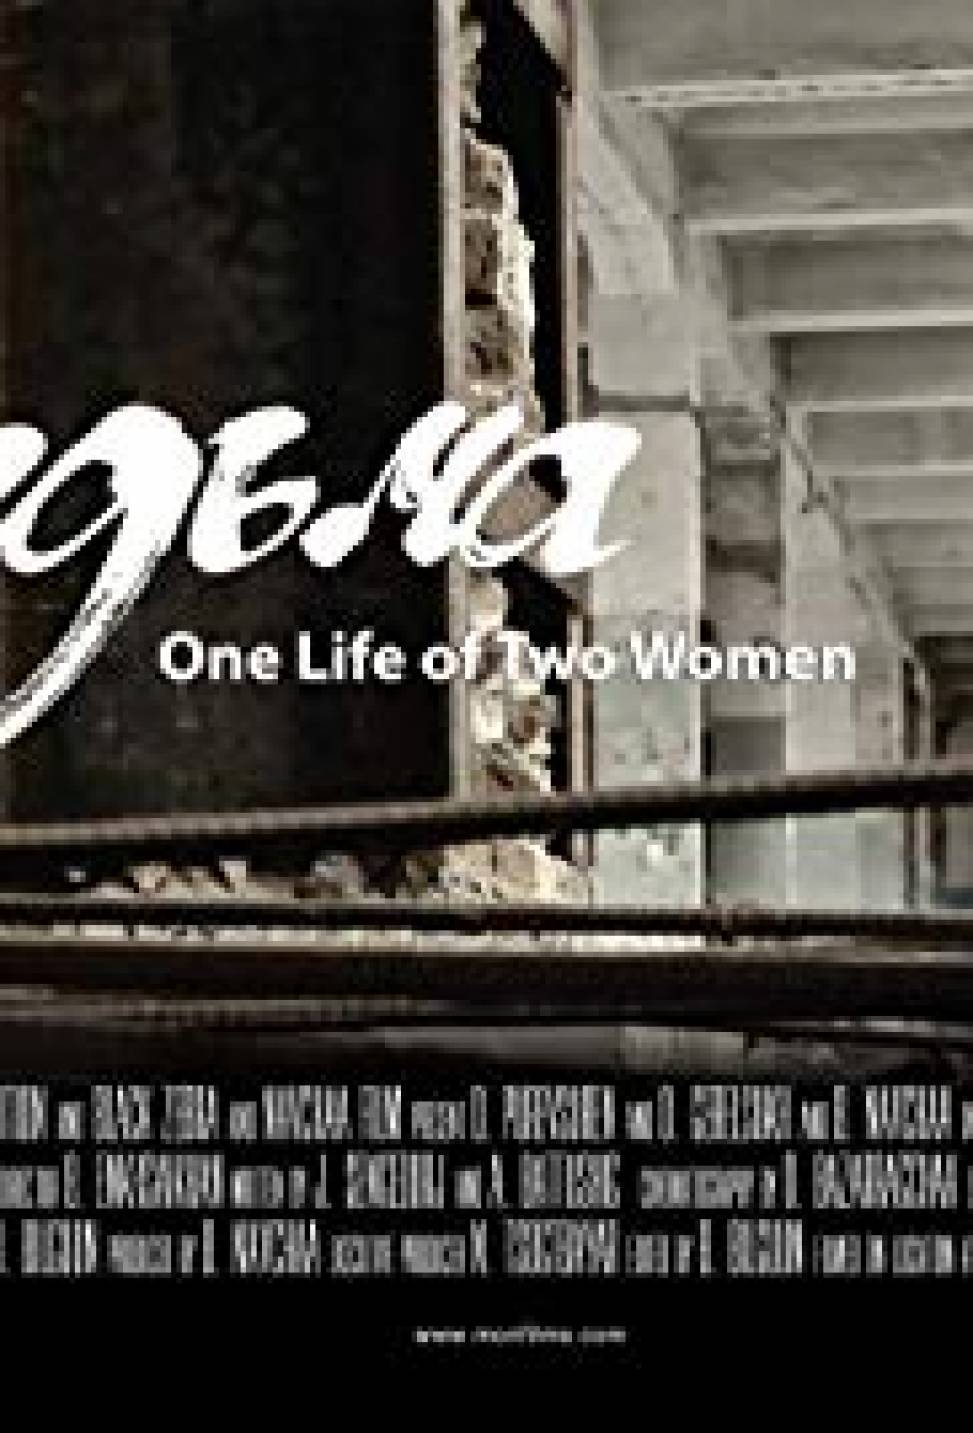 One Life of Two Women